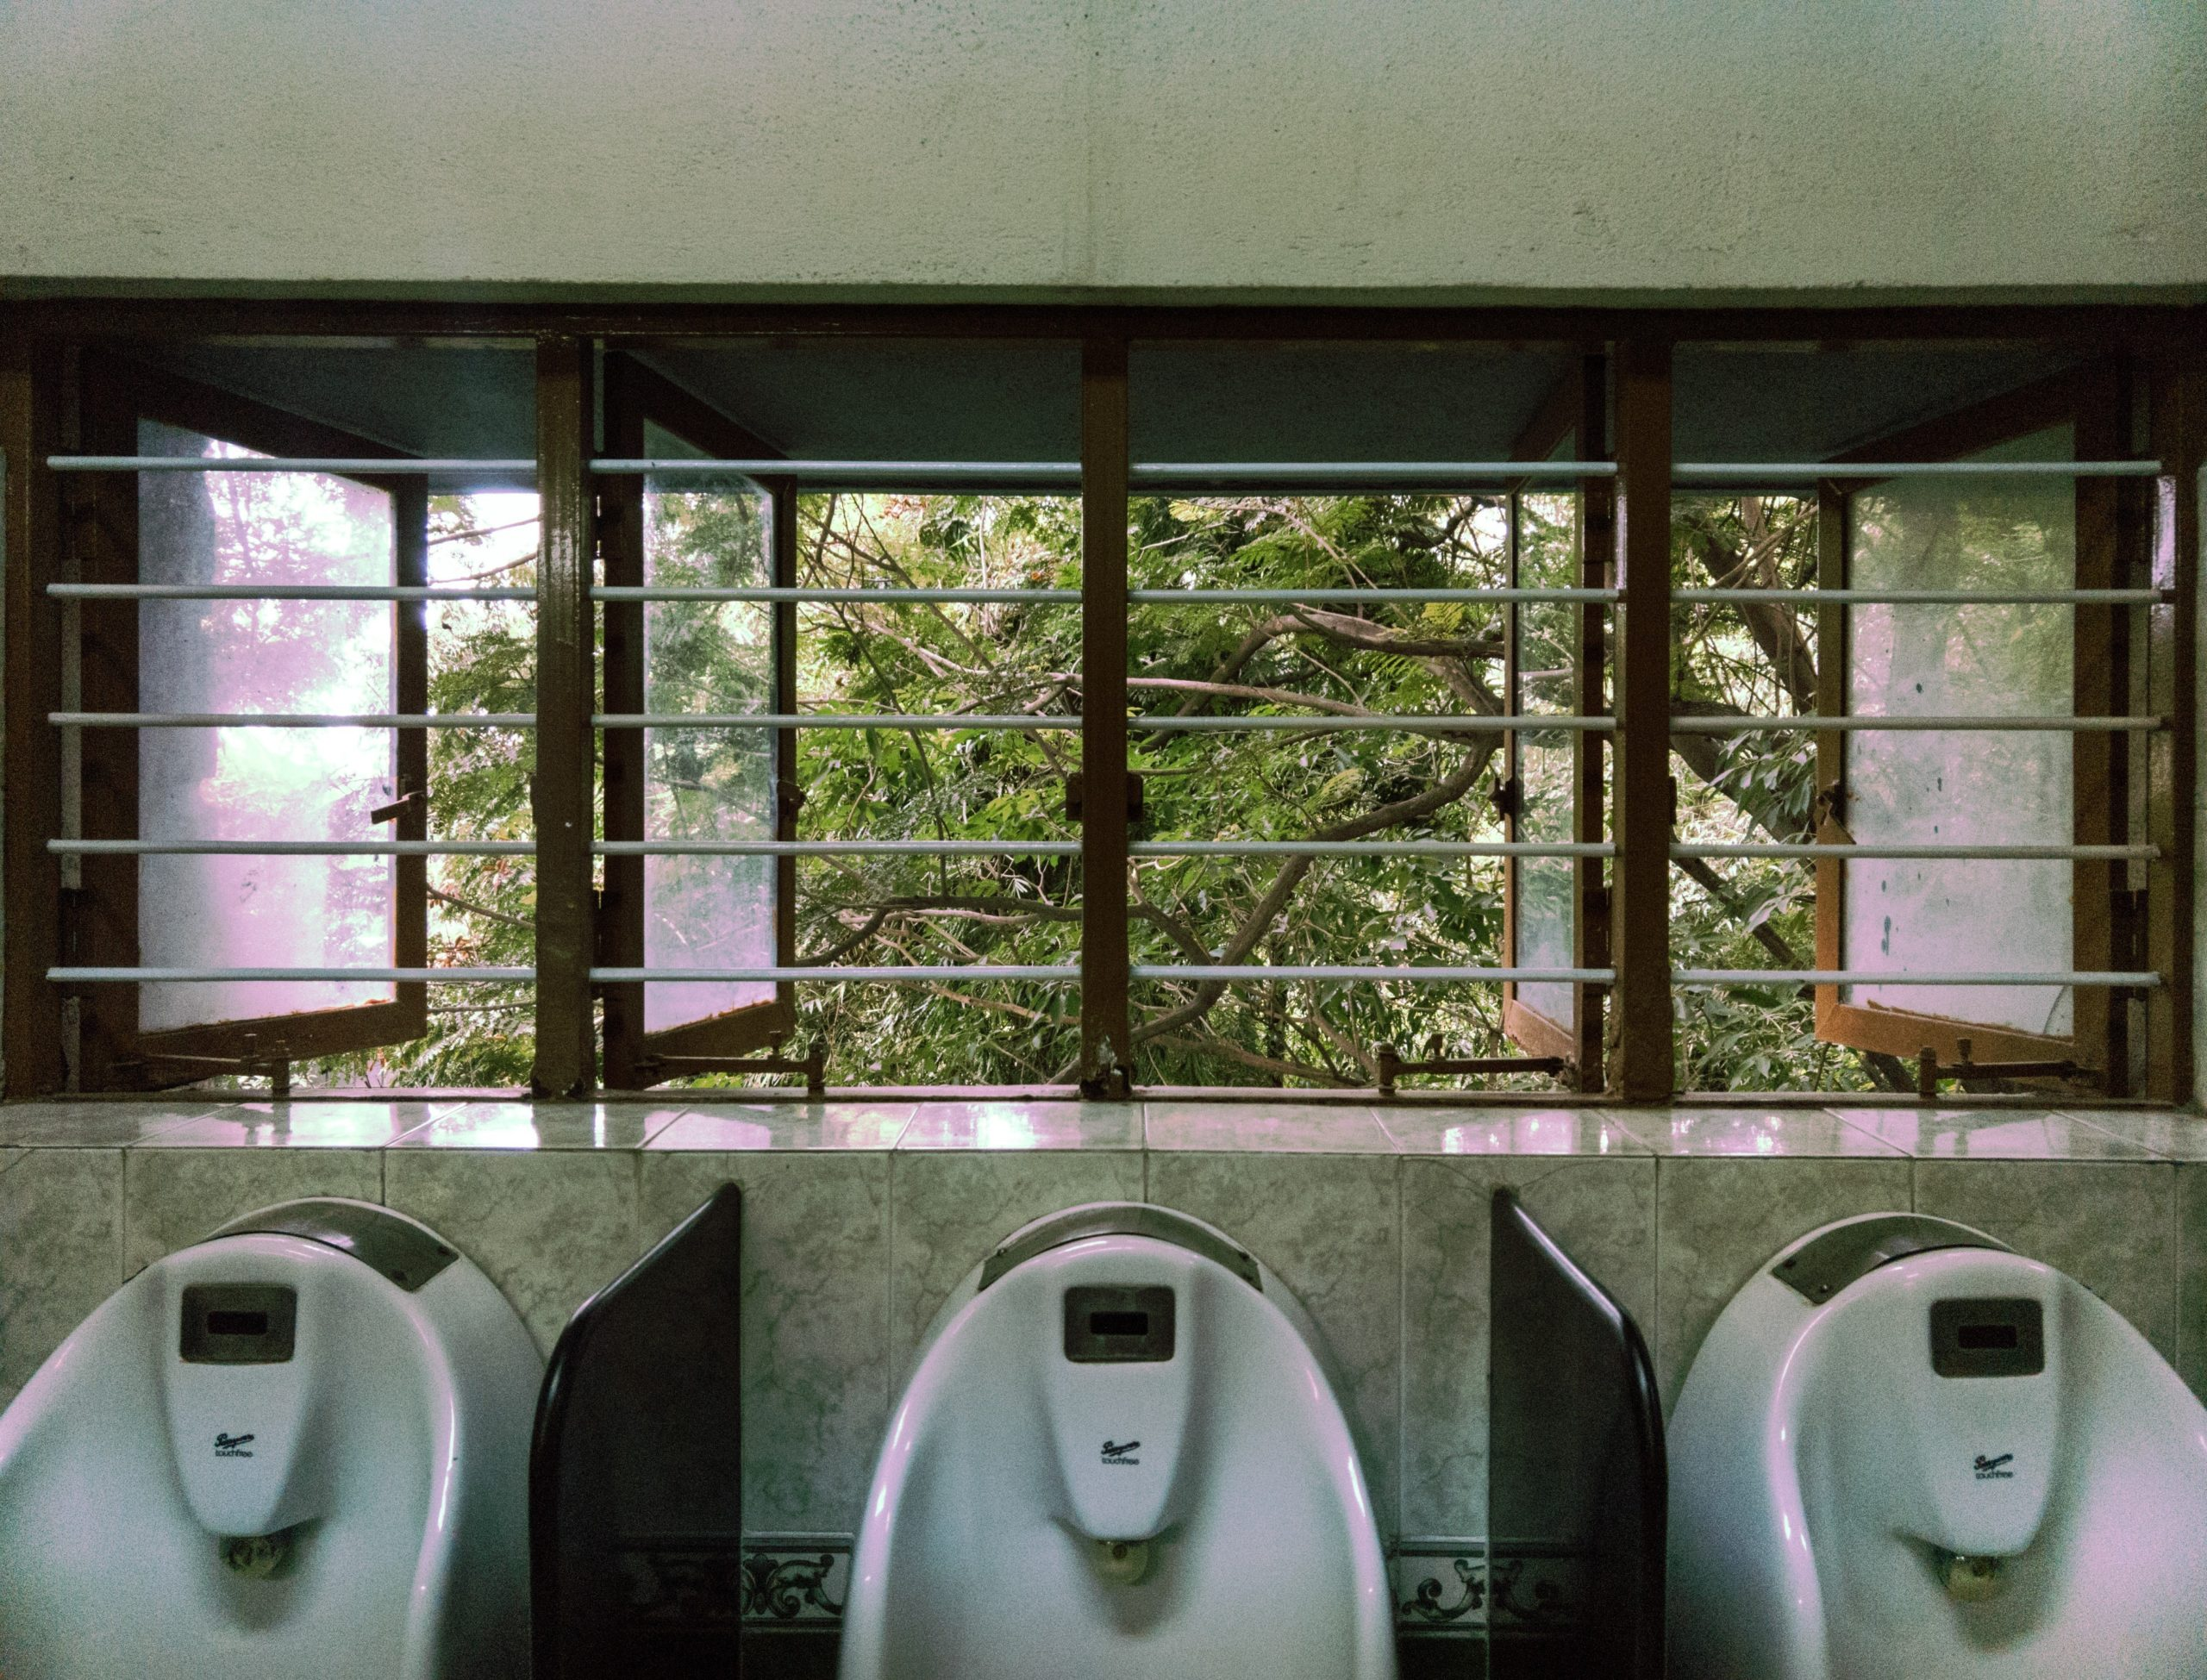 clean-urinals-beneath-beatiful-window-for-a-better-cleaning-solution